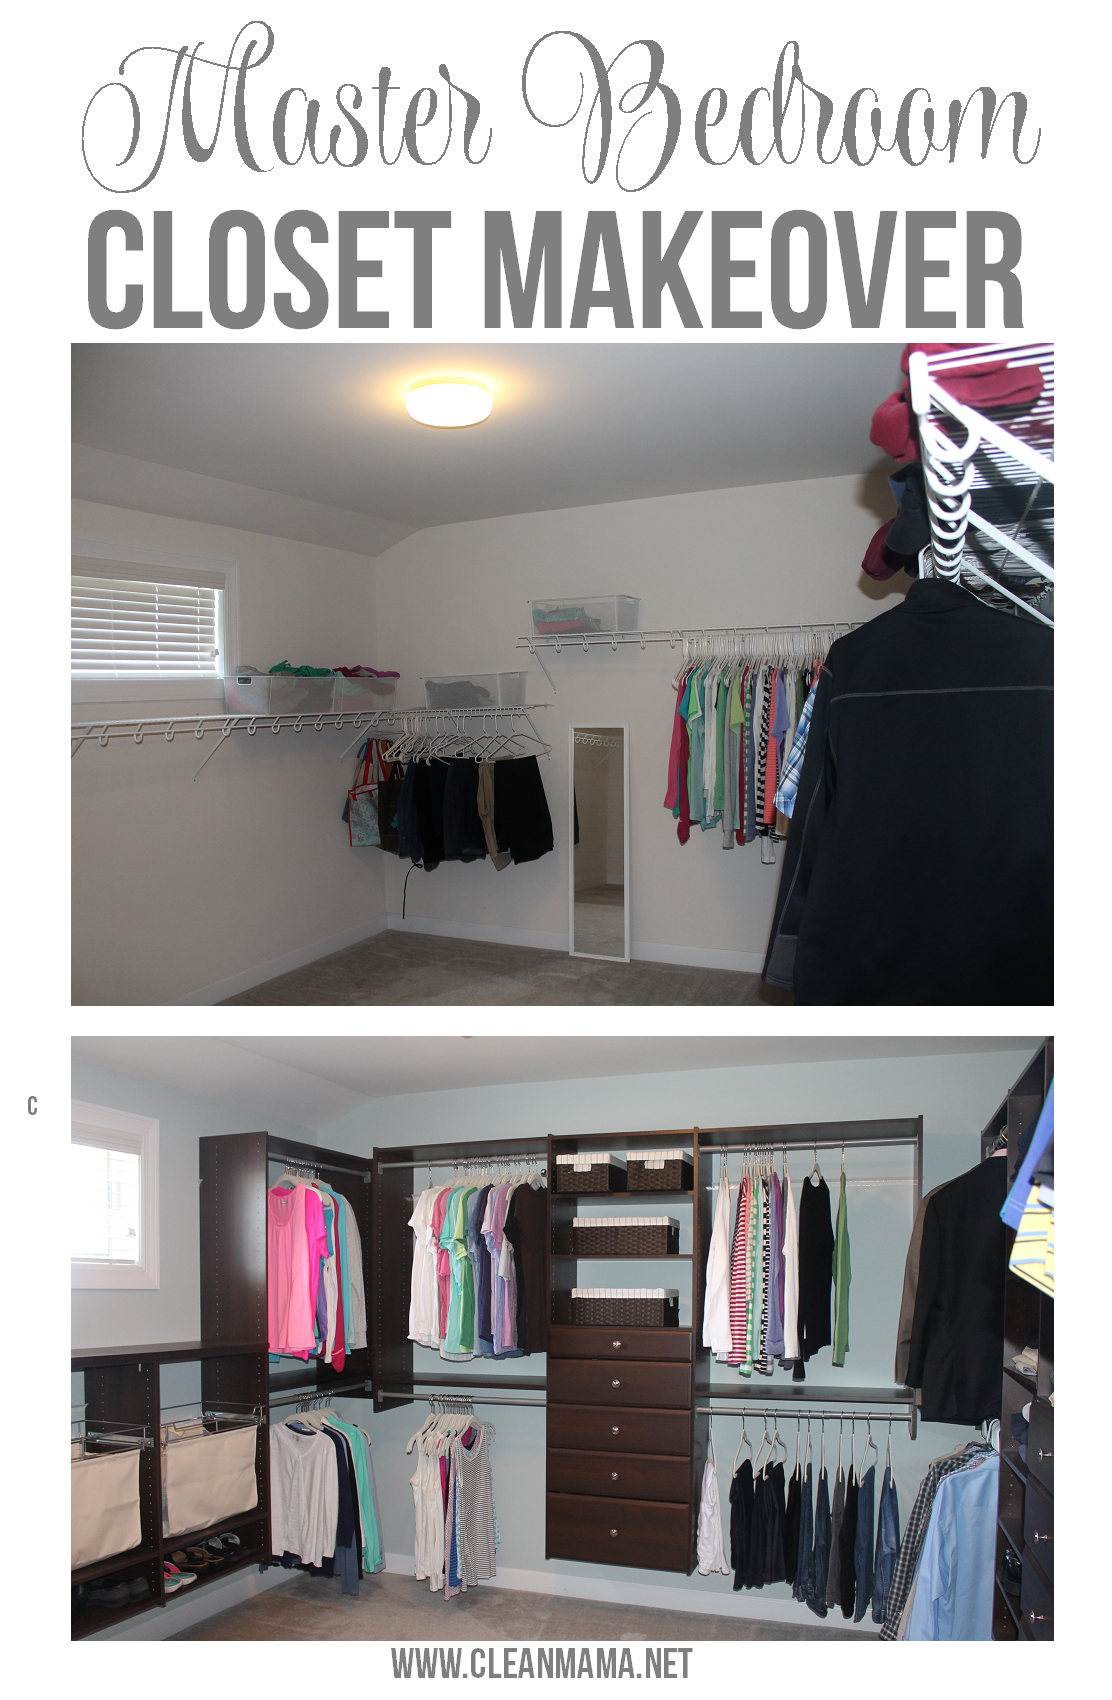 Martha Stewart Living Master Bedroom Closet Makeover is part of Organize bedroom Closet - I was asked to share a Martha Stewart Living at The Home Depot Closet System makeover on my blog and while our master bedroom closet system was fine, you can bet I agreed to install a Martha Stewart Living at The Home Depot Closet System! The process started with measuring out the closet and inputting the …